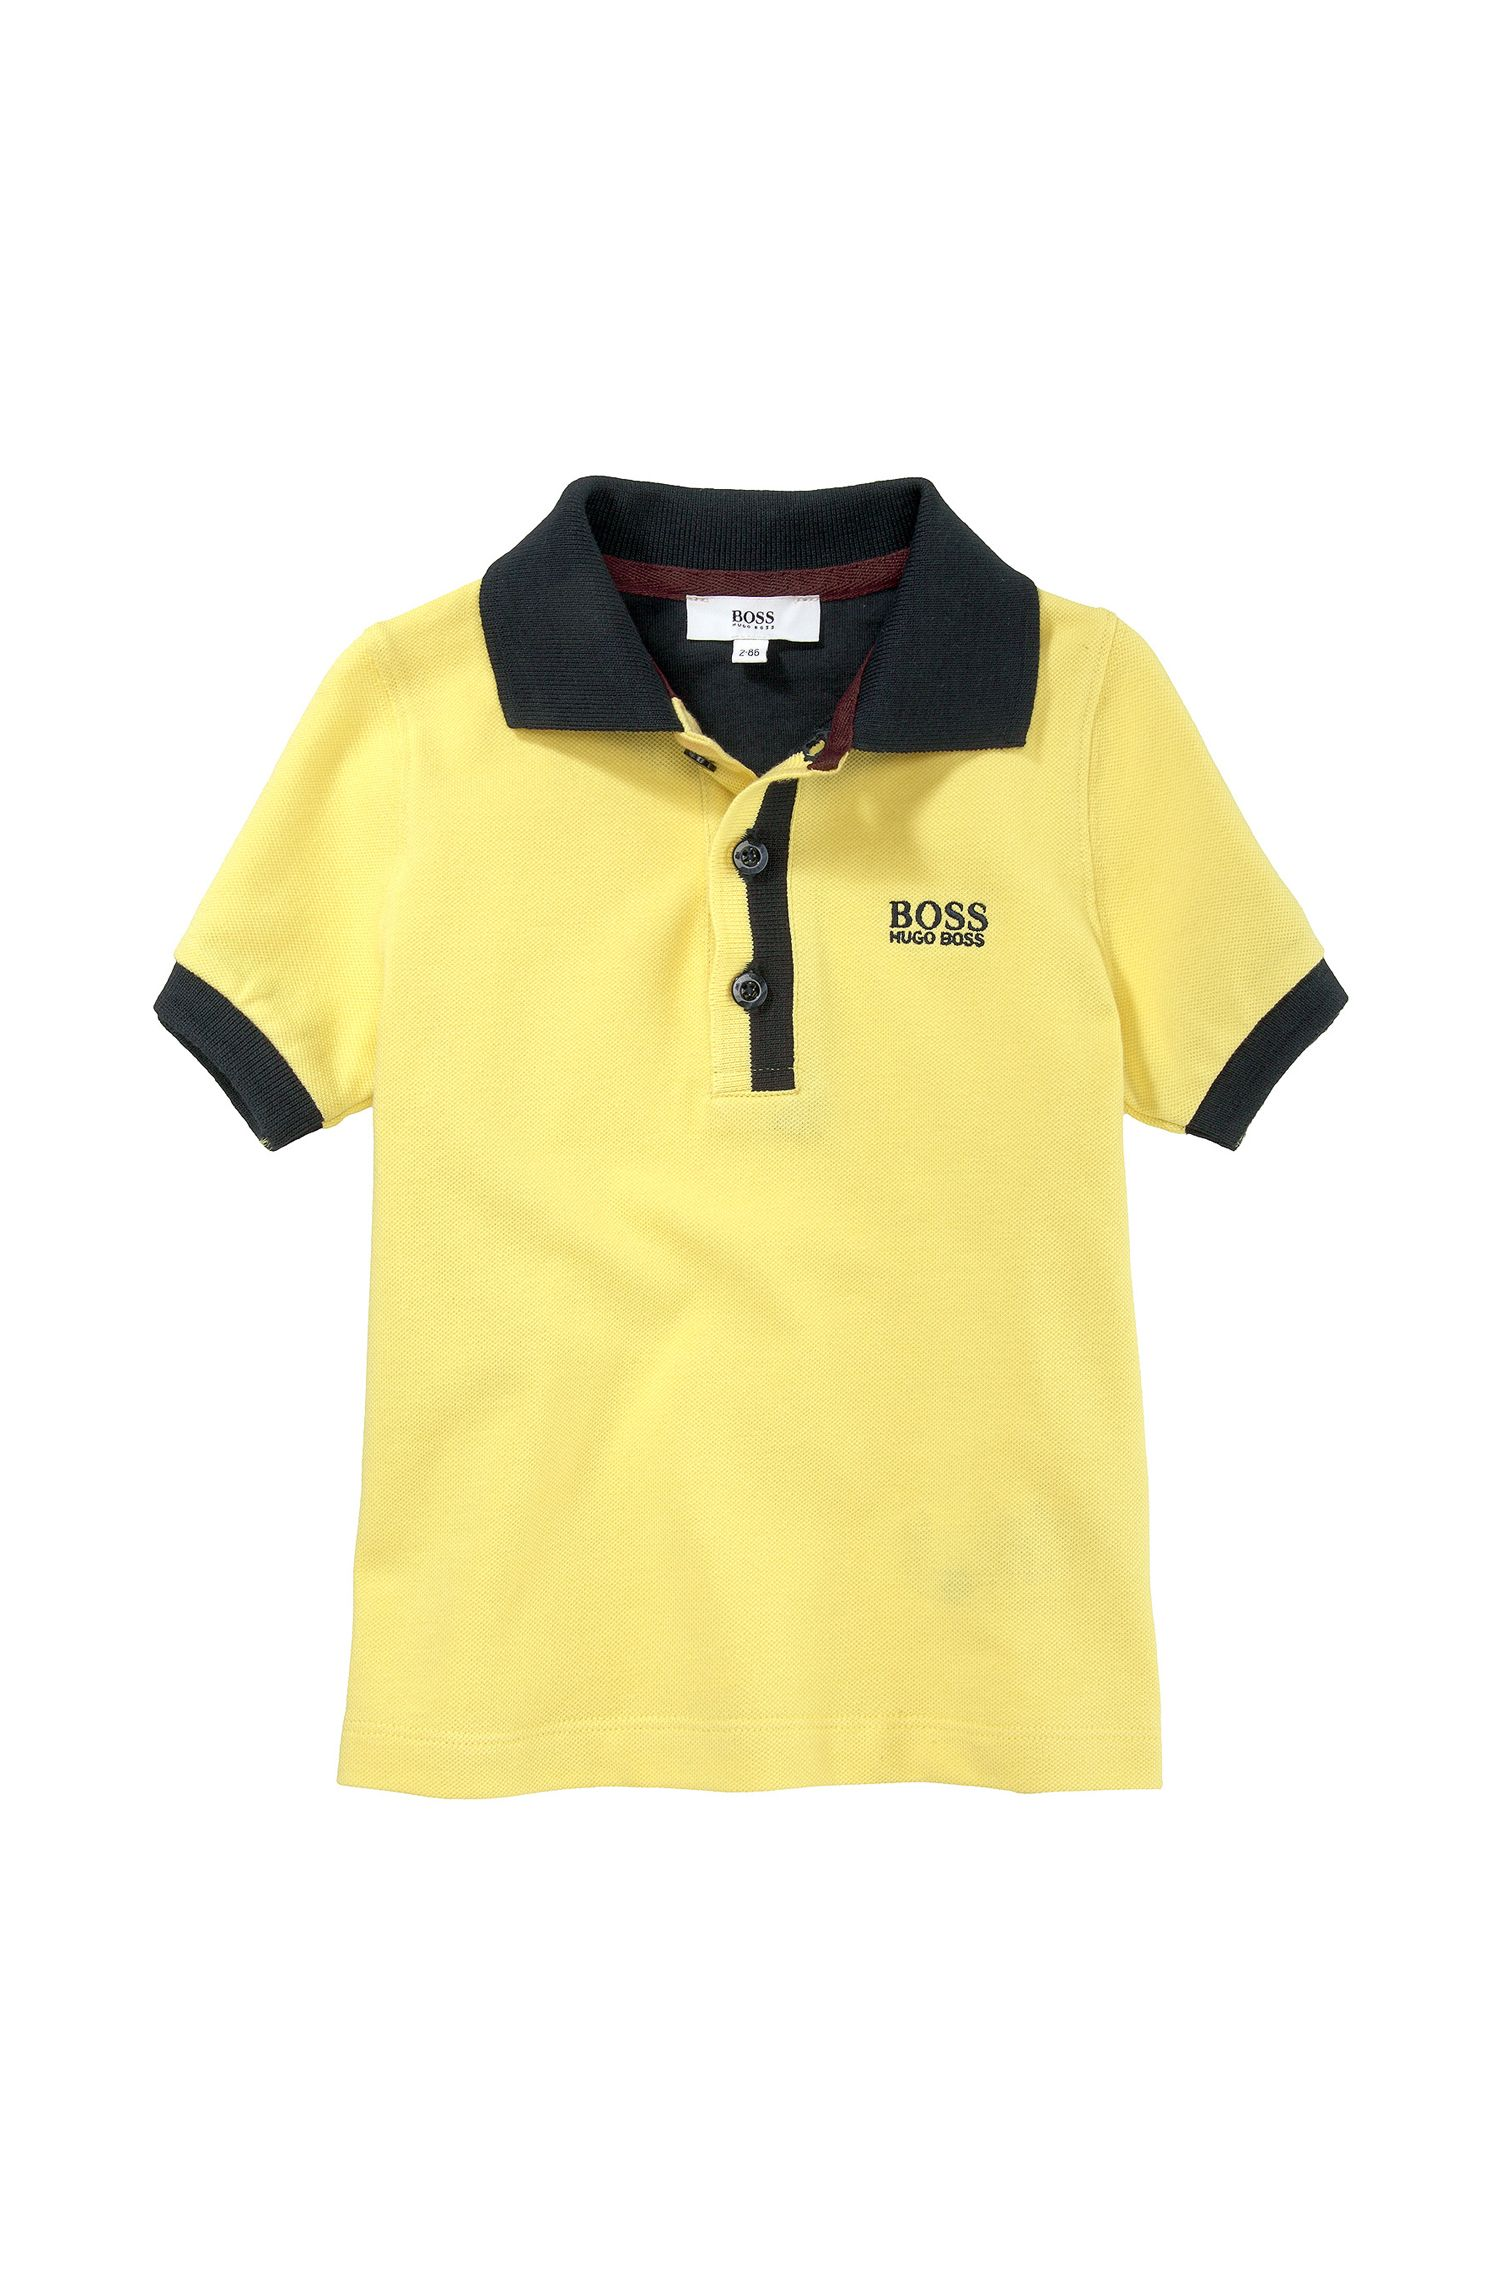 'J05285' | Toddler Cotton Piqué Polo Shirt